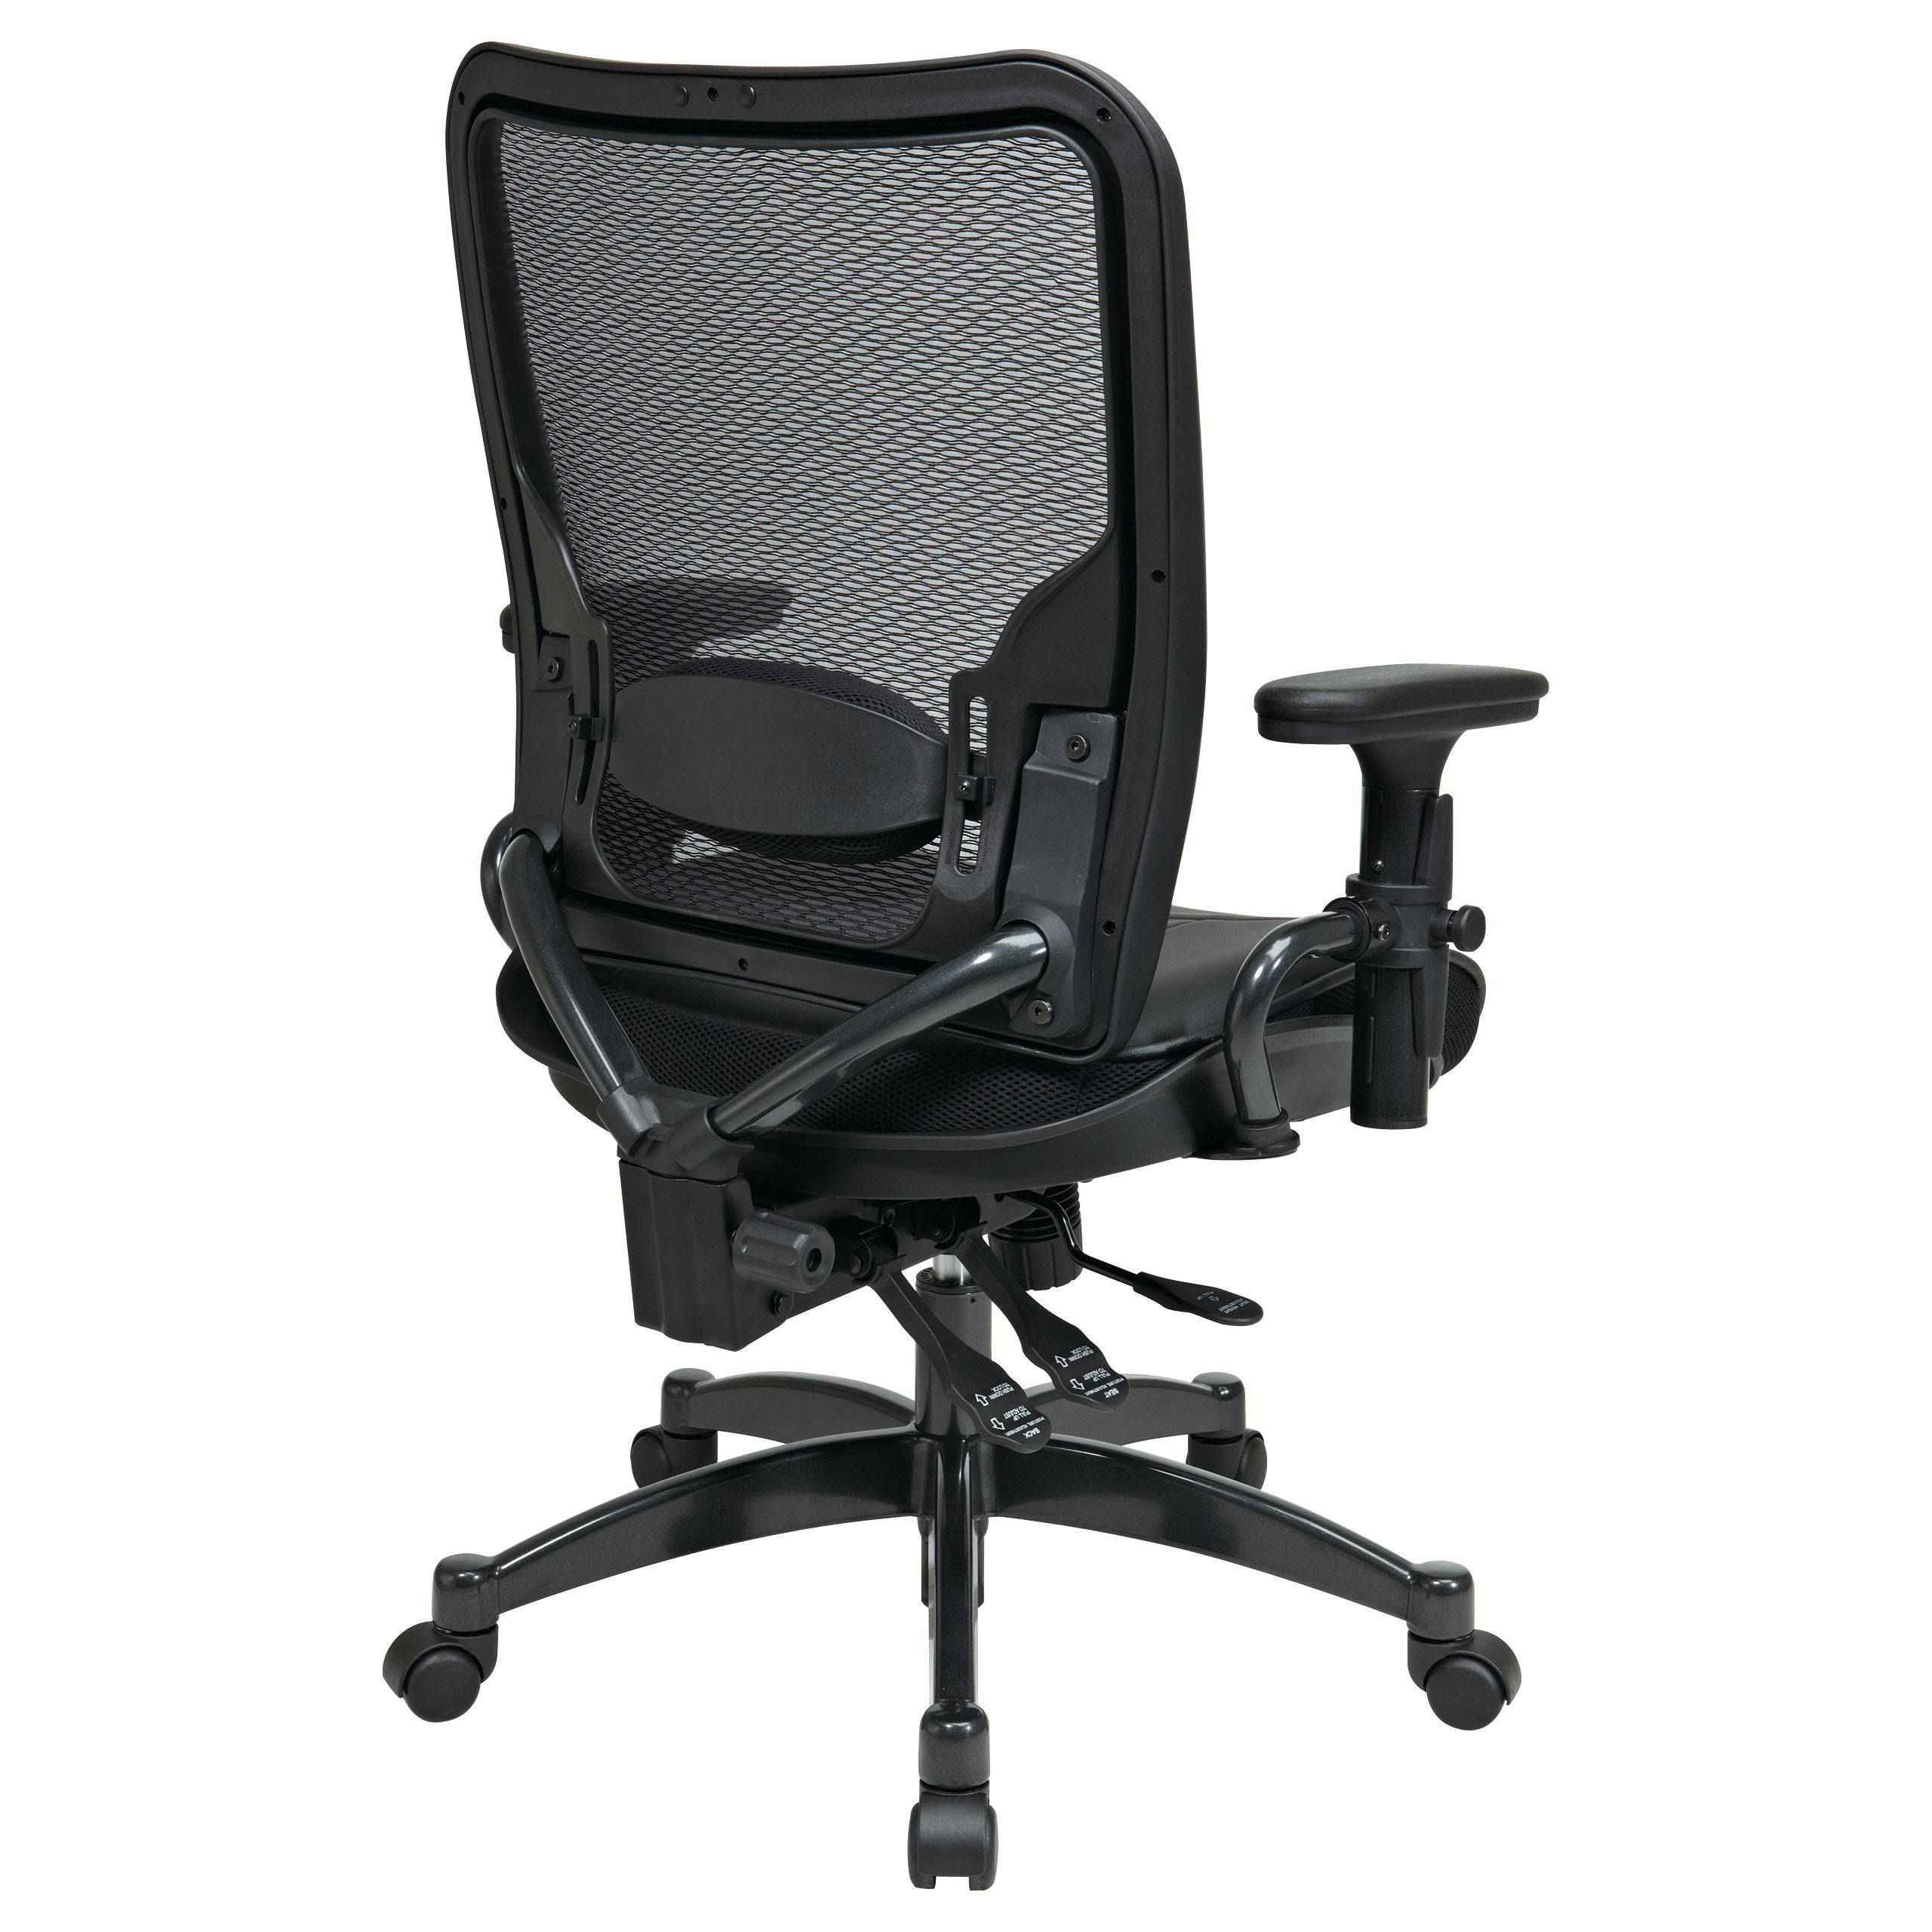 Charmant Shop Office Star Products Space 68 Series Breathable Dark Air Grid Chair    On Sale   Free Shipping Today   Overstock.com   7986980